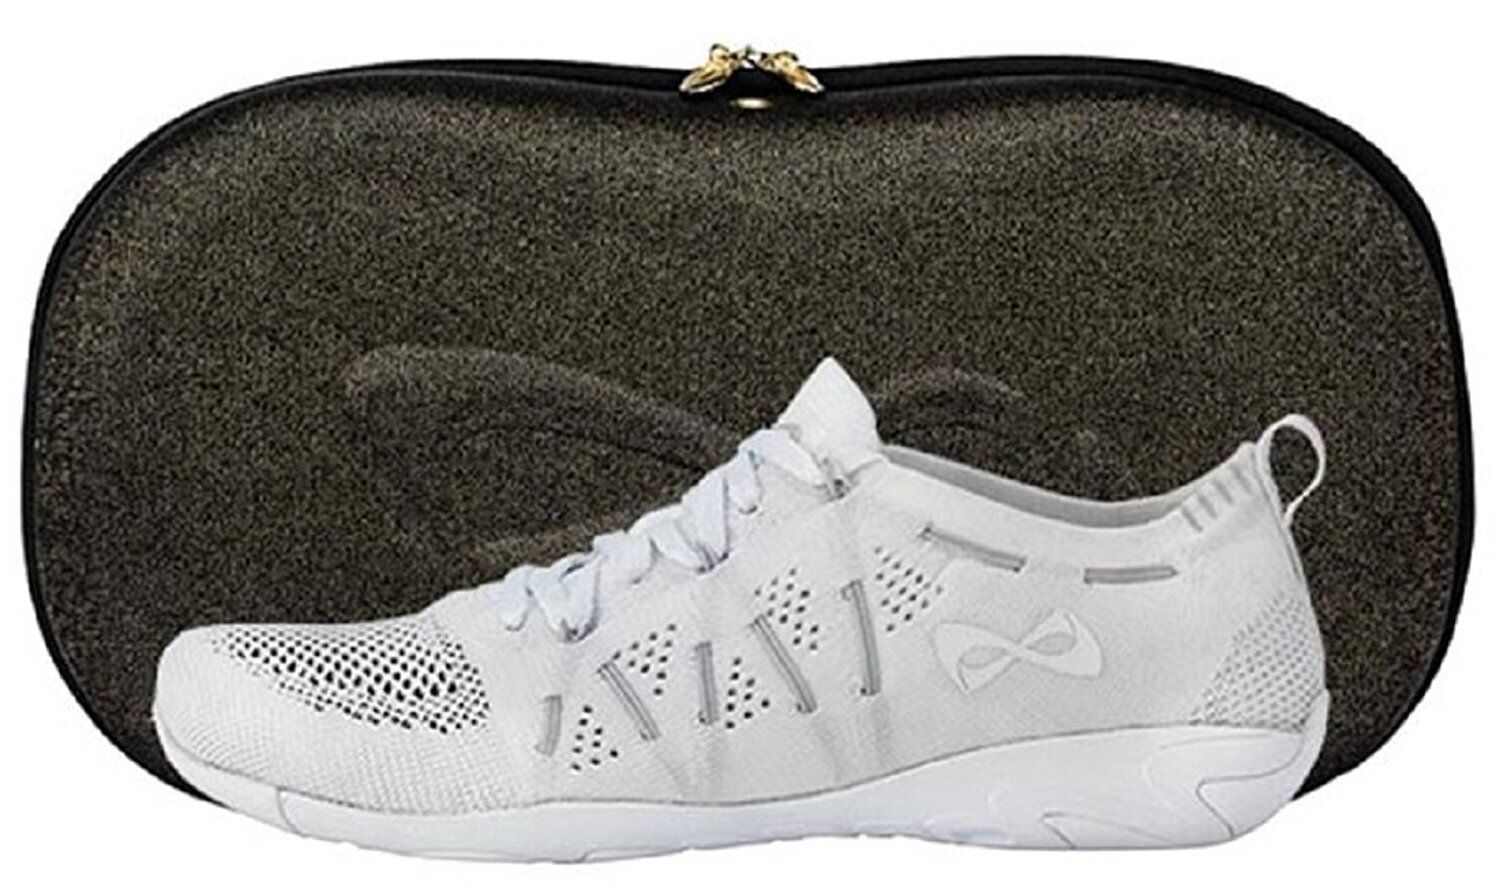 Nfinity Flyte Cheer Shoes NEW